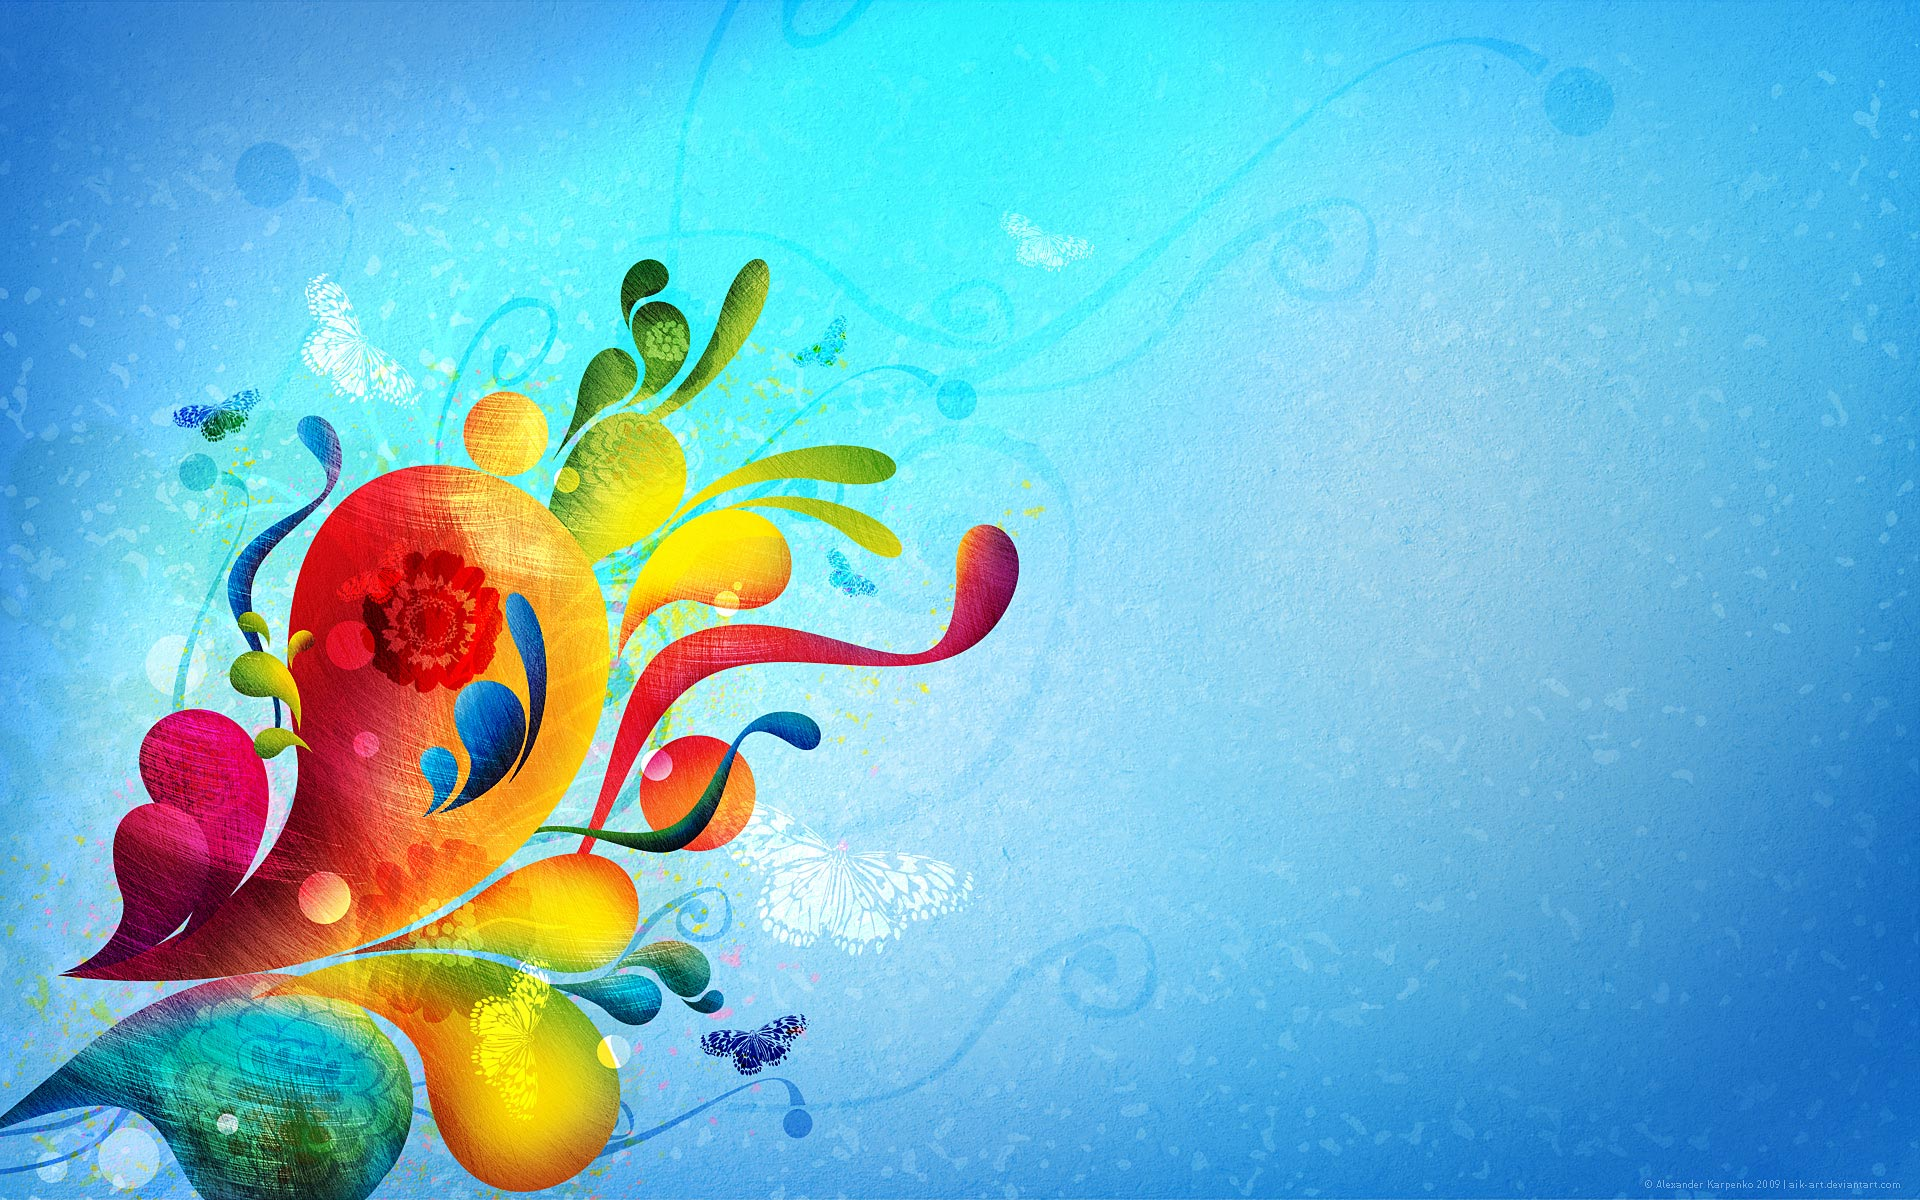 Graphic-Art-Backgrounds.jpg